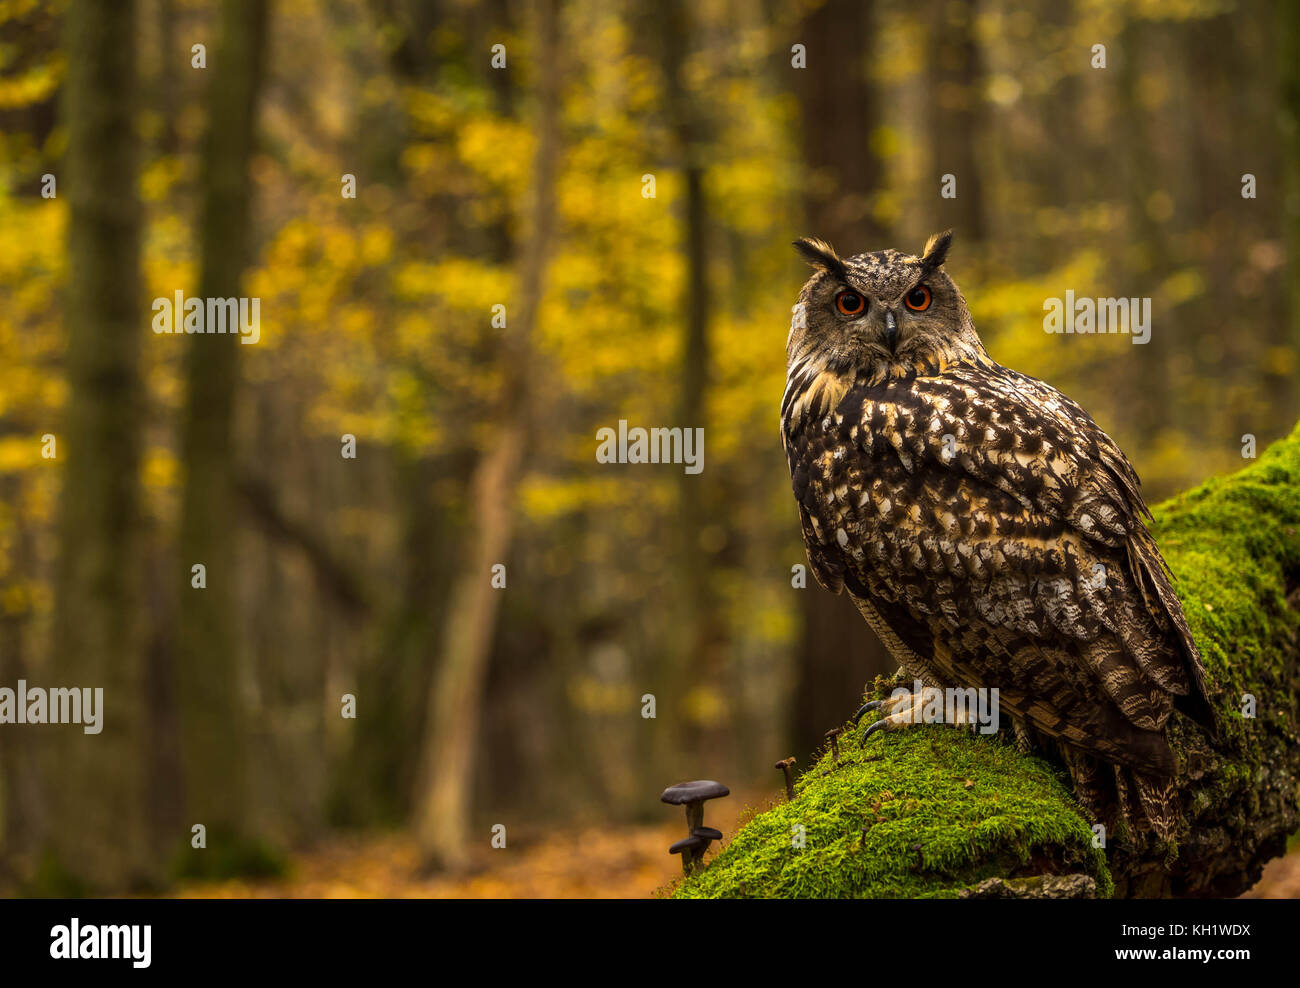 A captive Eagle Owl on grounds of a forest in autumn. - Stock Image